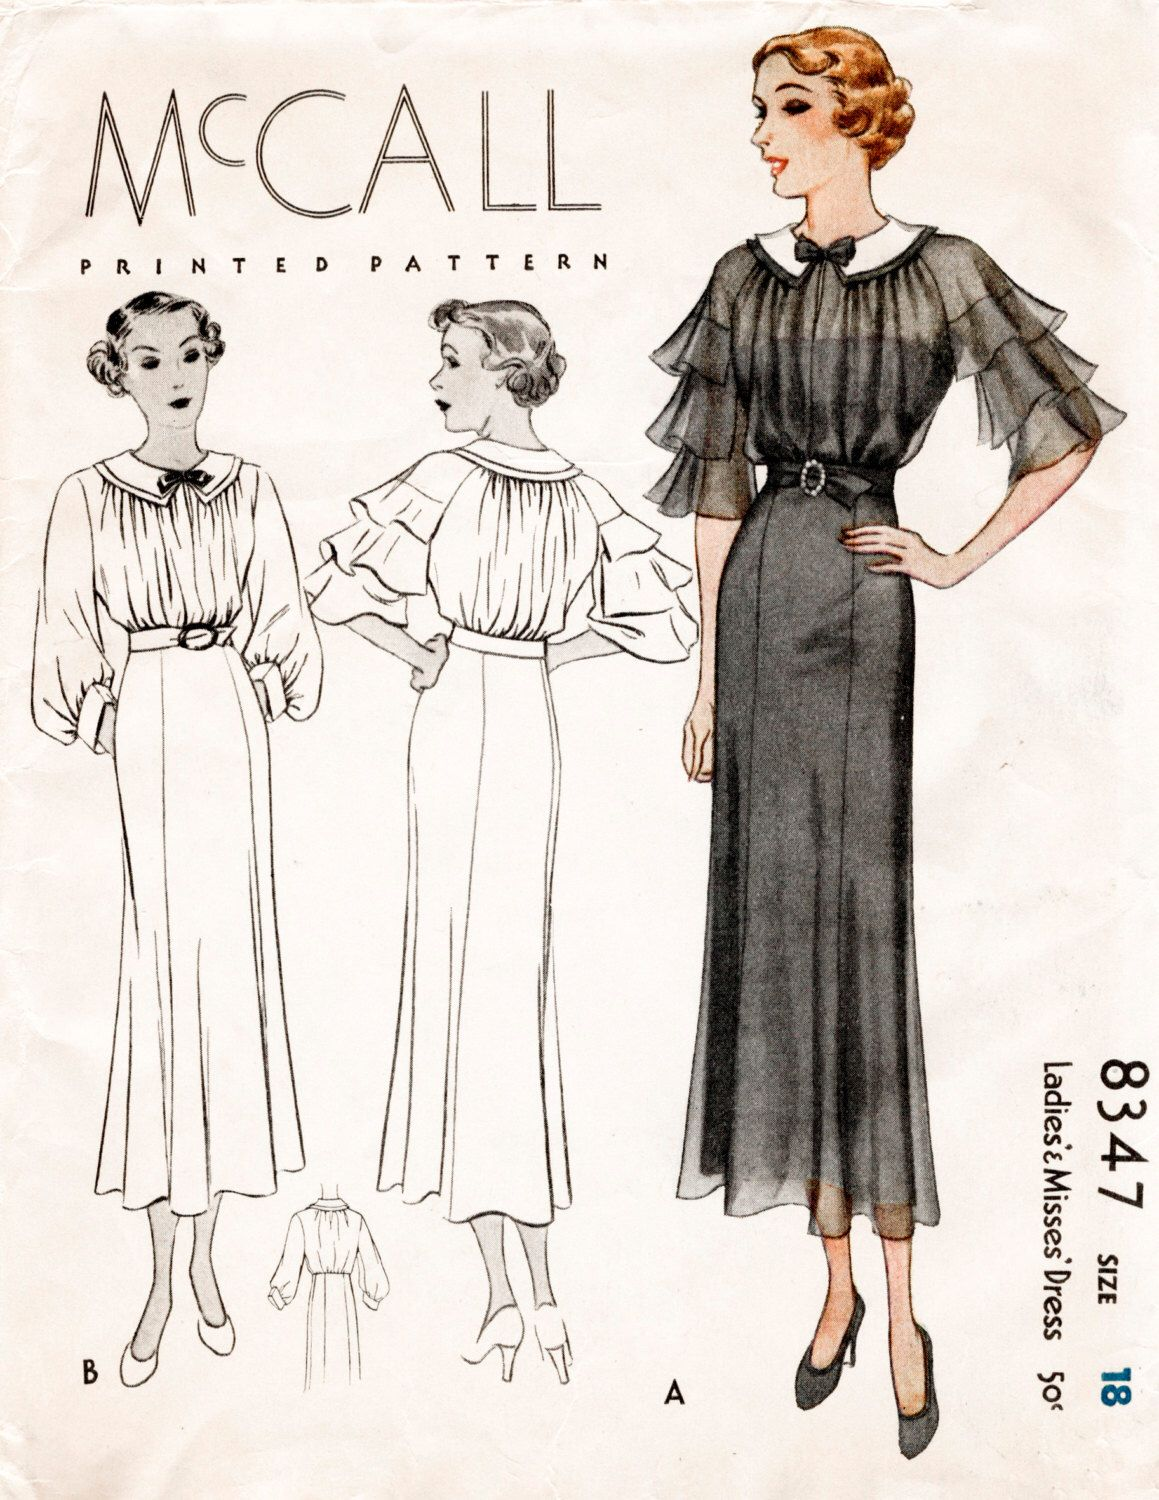 Beautiful fluffy sleeves...30s 1930s vintage repro sewing dress pattern cascade ruffles shirred bodice frock bust 36 b36 reproduction by LadyMarloweStudios on Etsy https://www.etsy.com/listing/465233802/30s-1930s-vintage-repro-sewing-dress